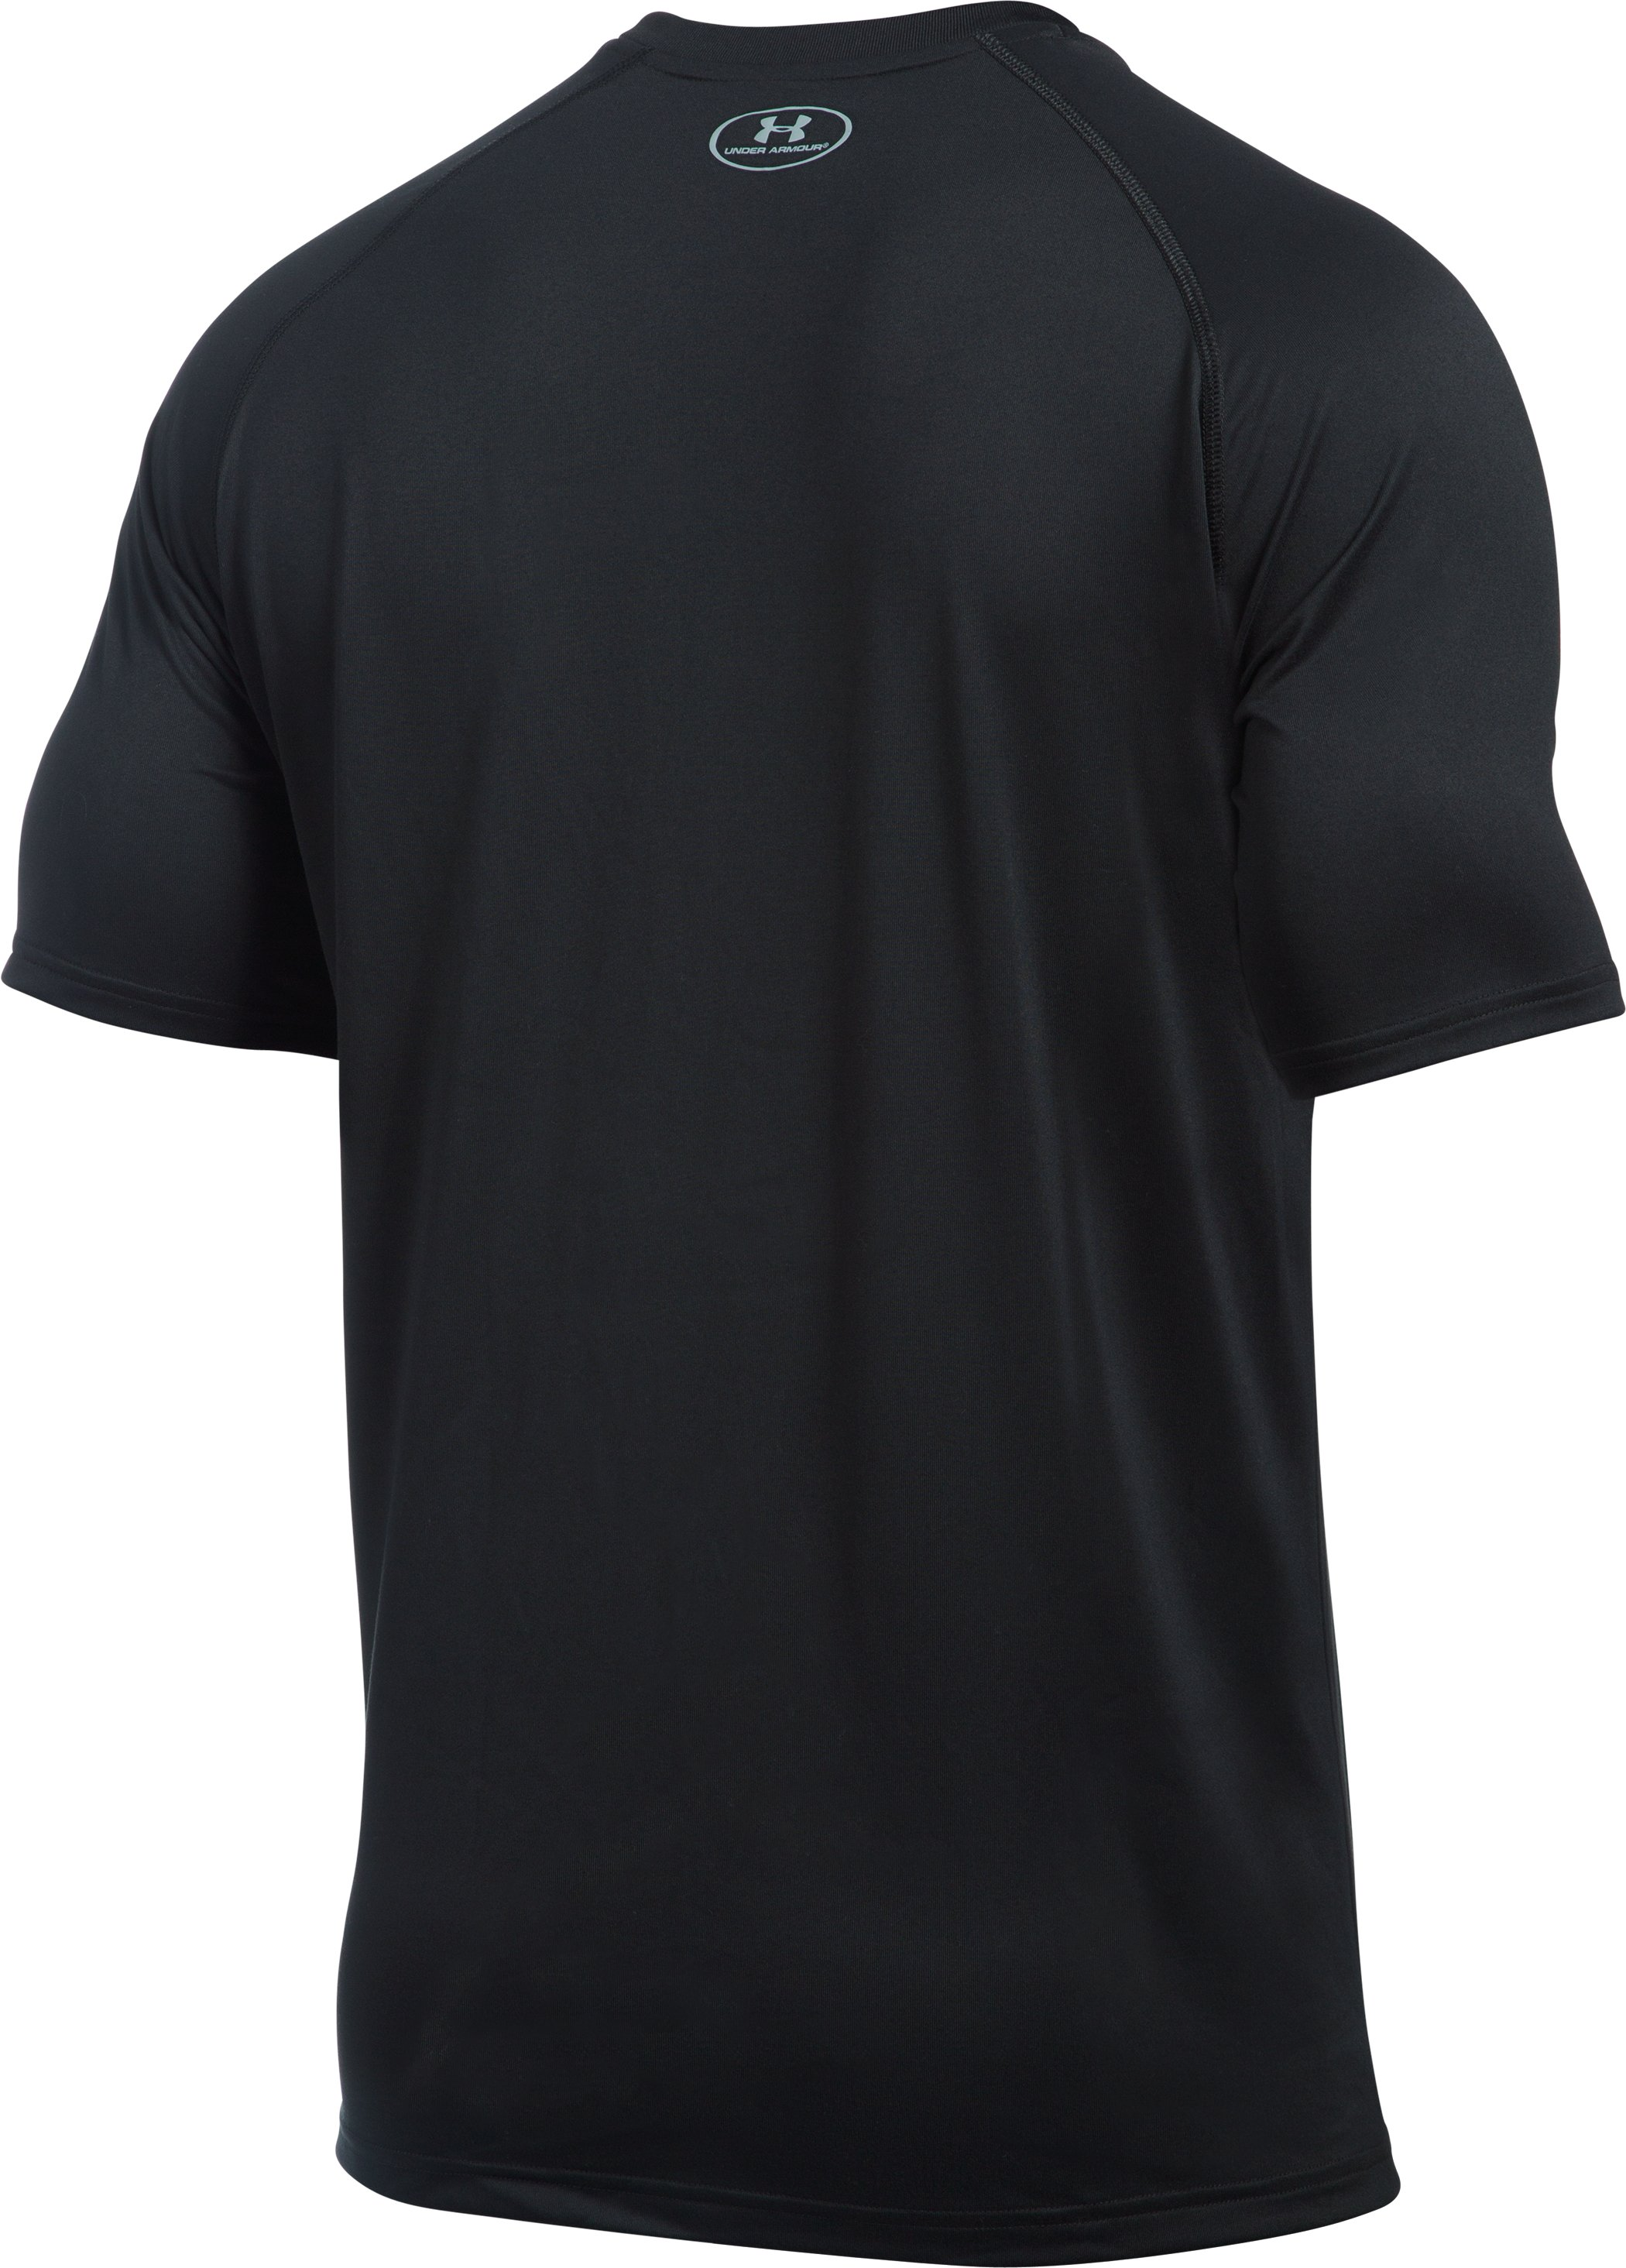 Men's Hawai'i UA Tech™ Sideline T-Shirt, Black